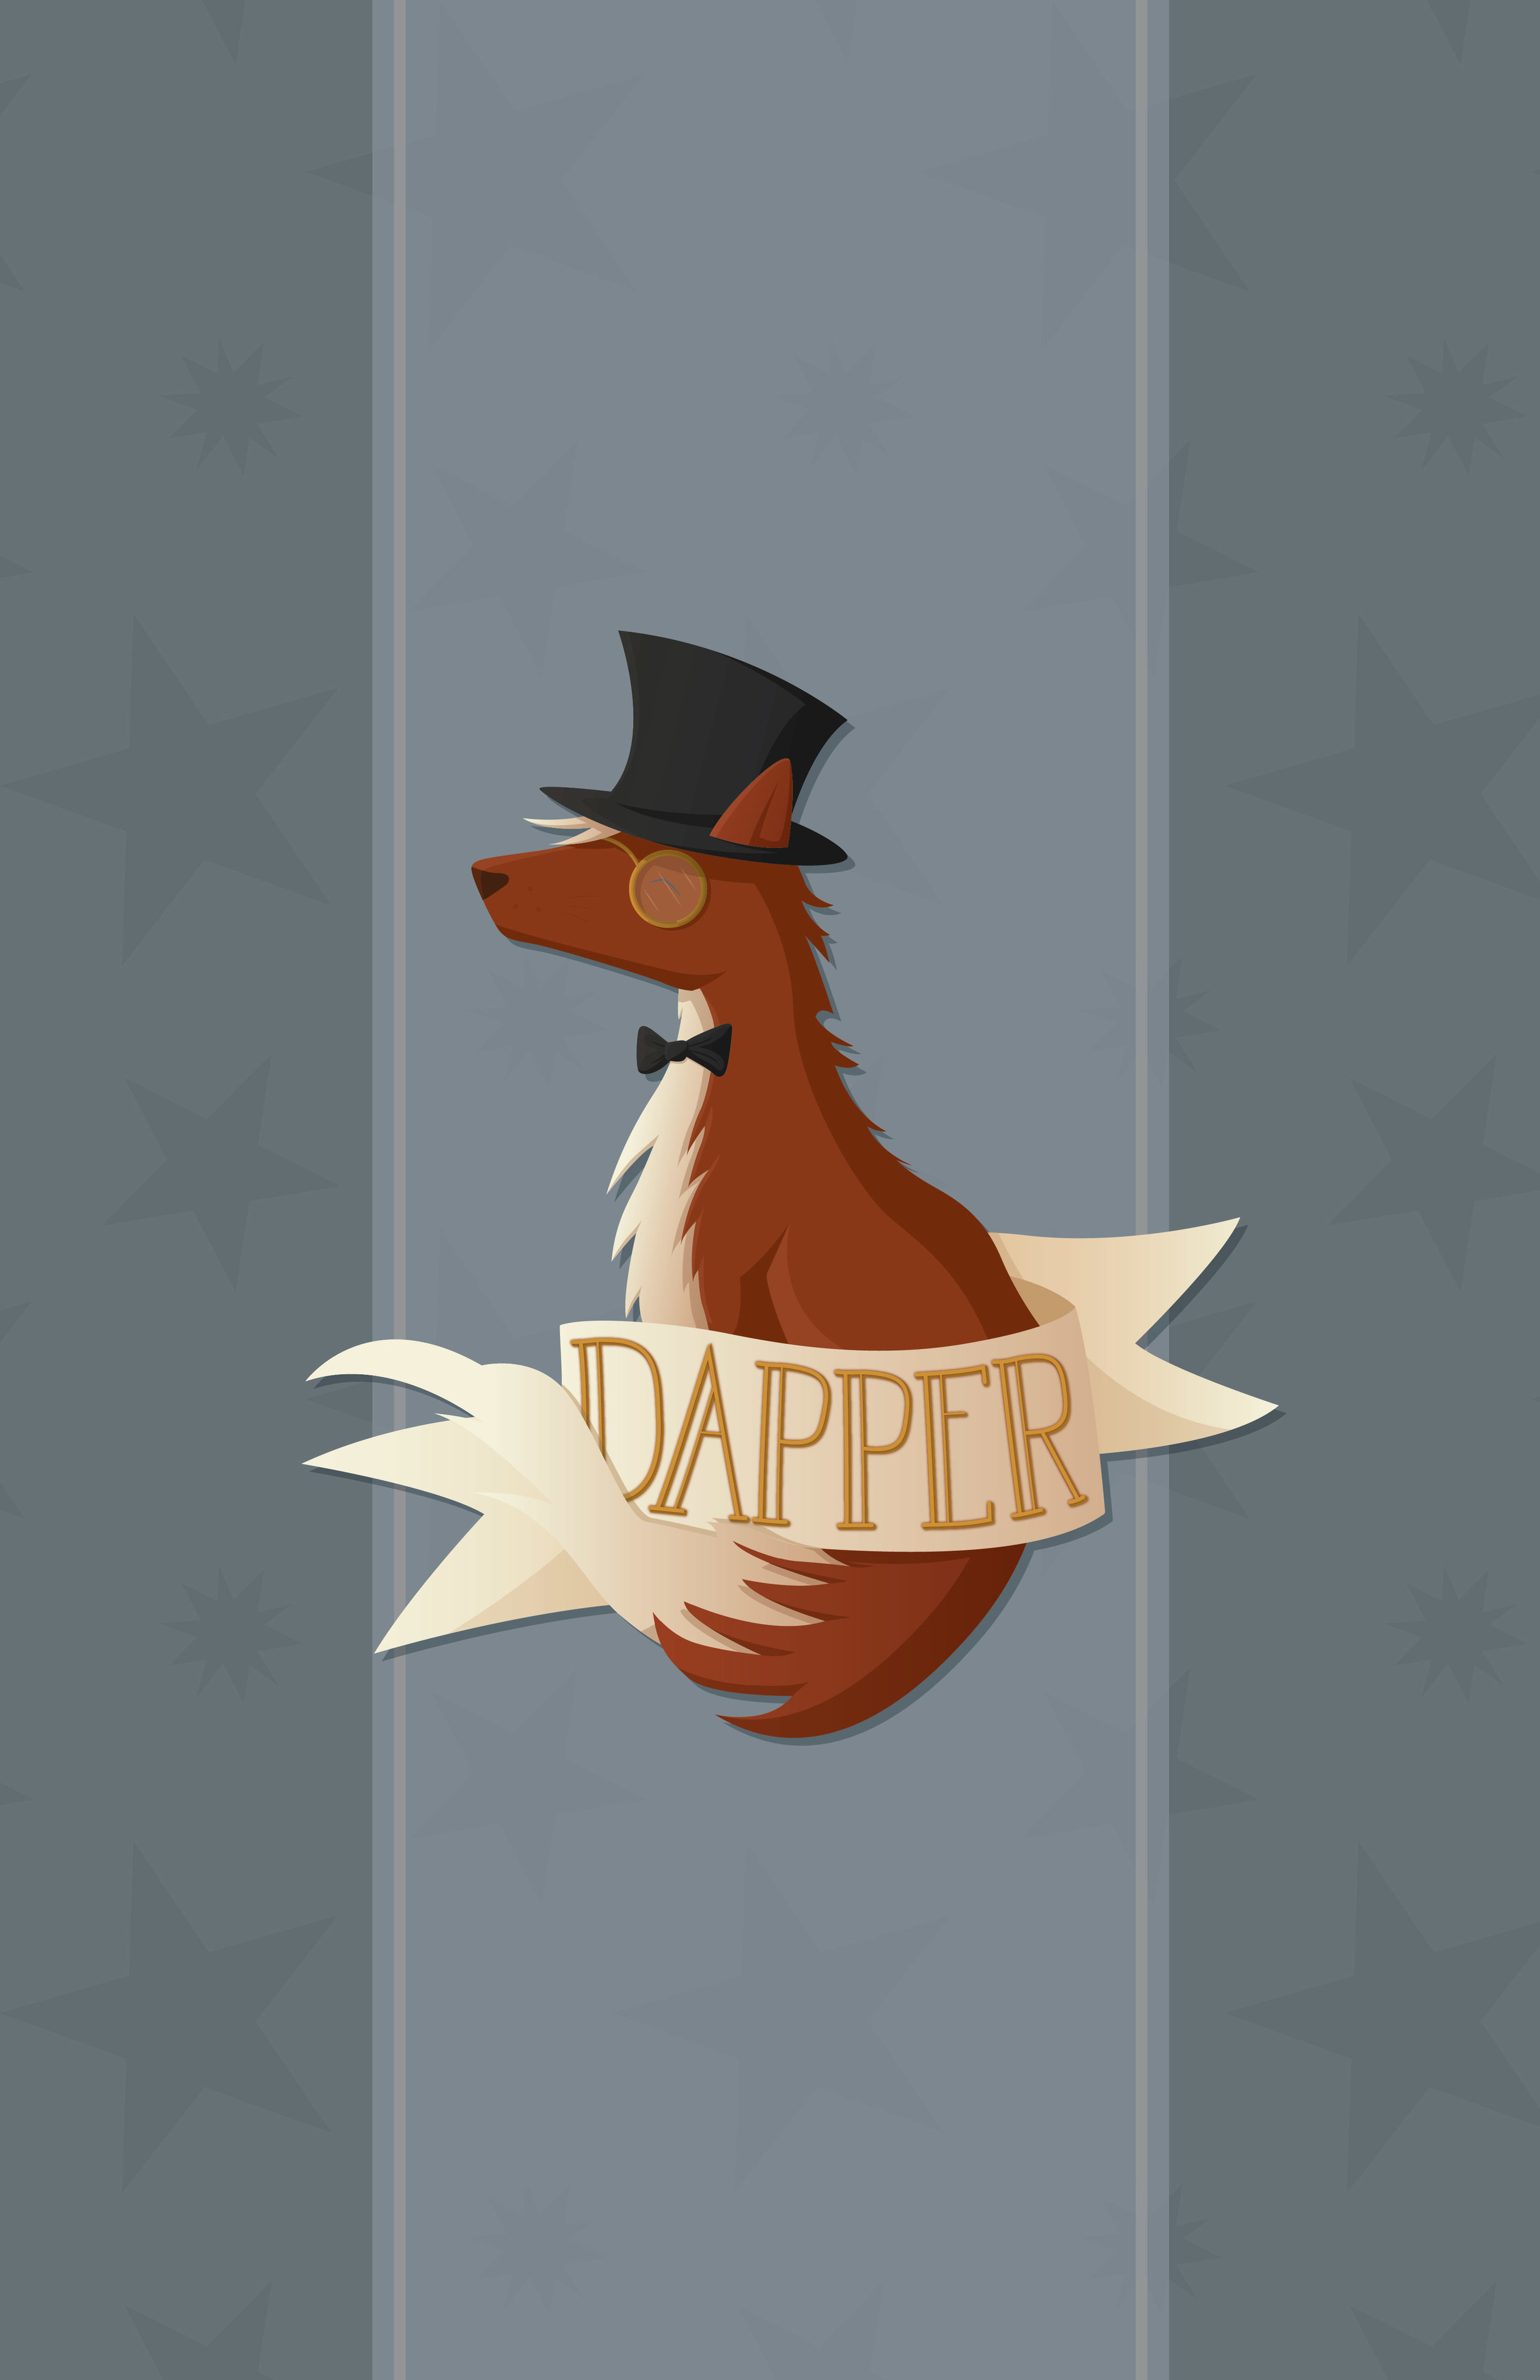 fox_dapper-01.jpg